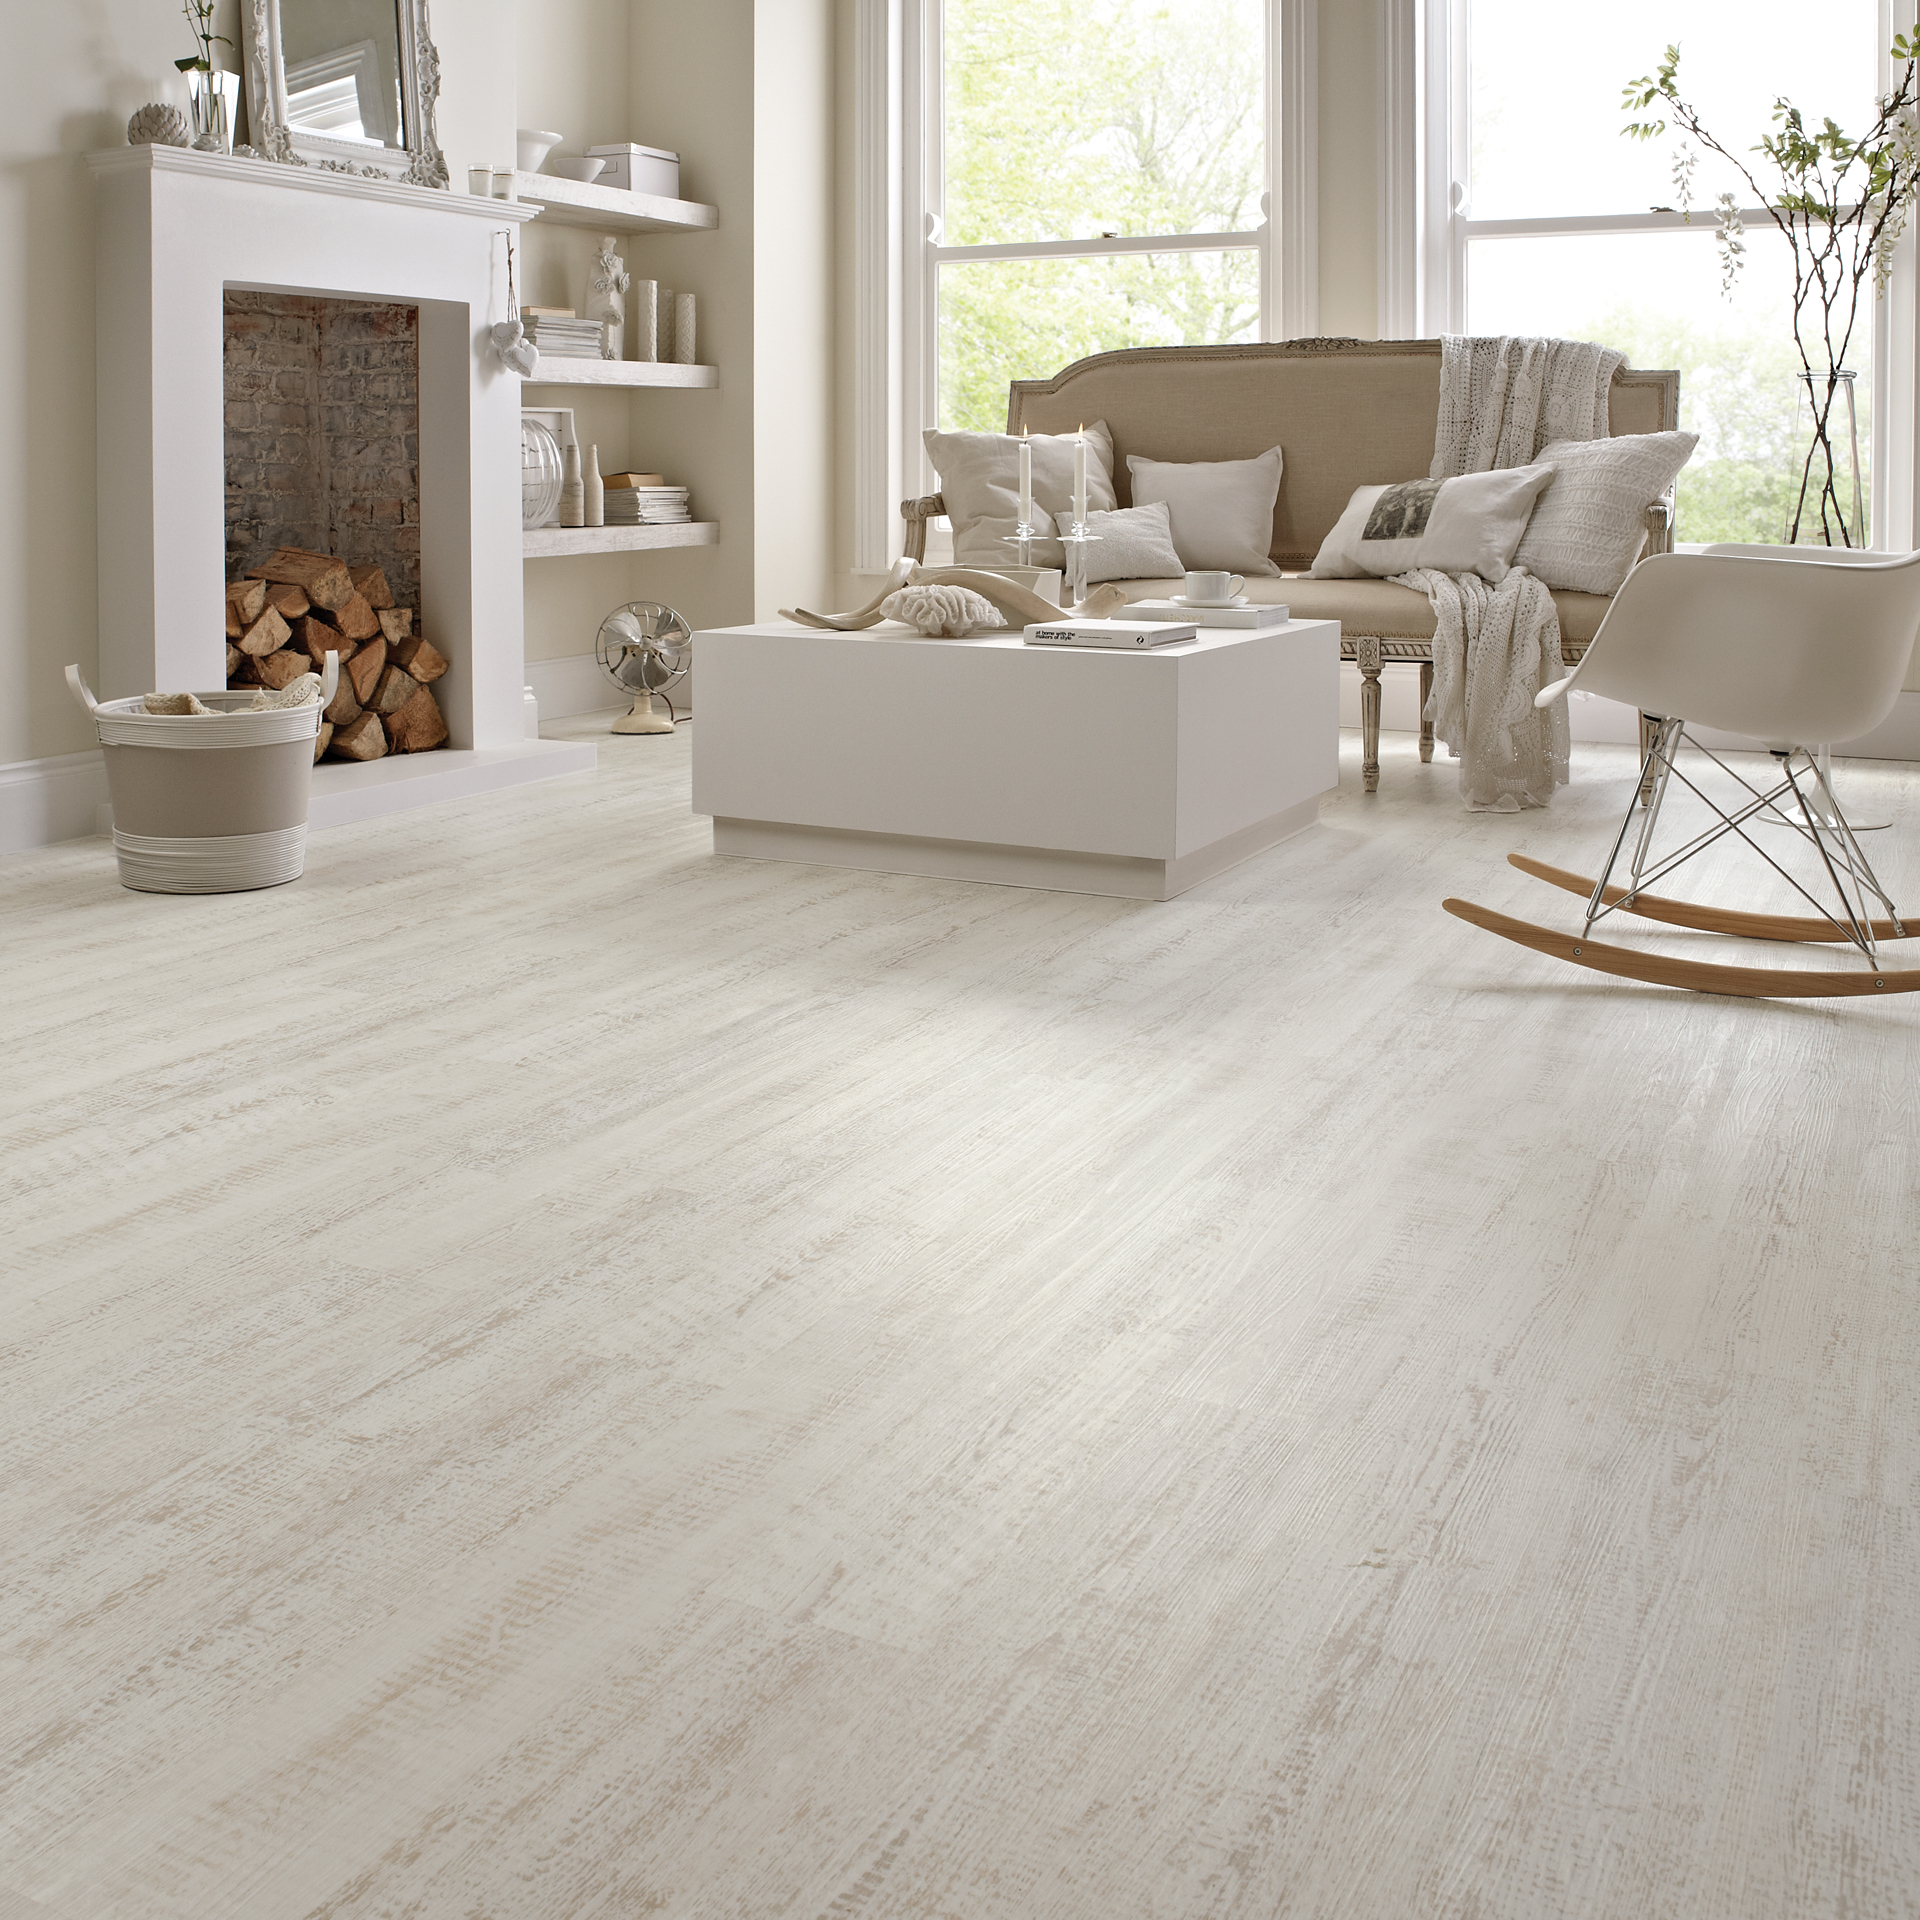 karndean flooring kp105 white painted oak living room flooring - knight tile ... CODAHQC